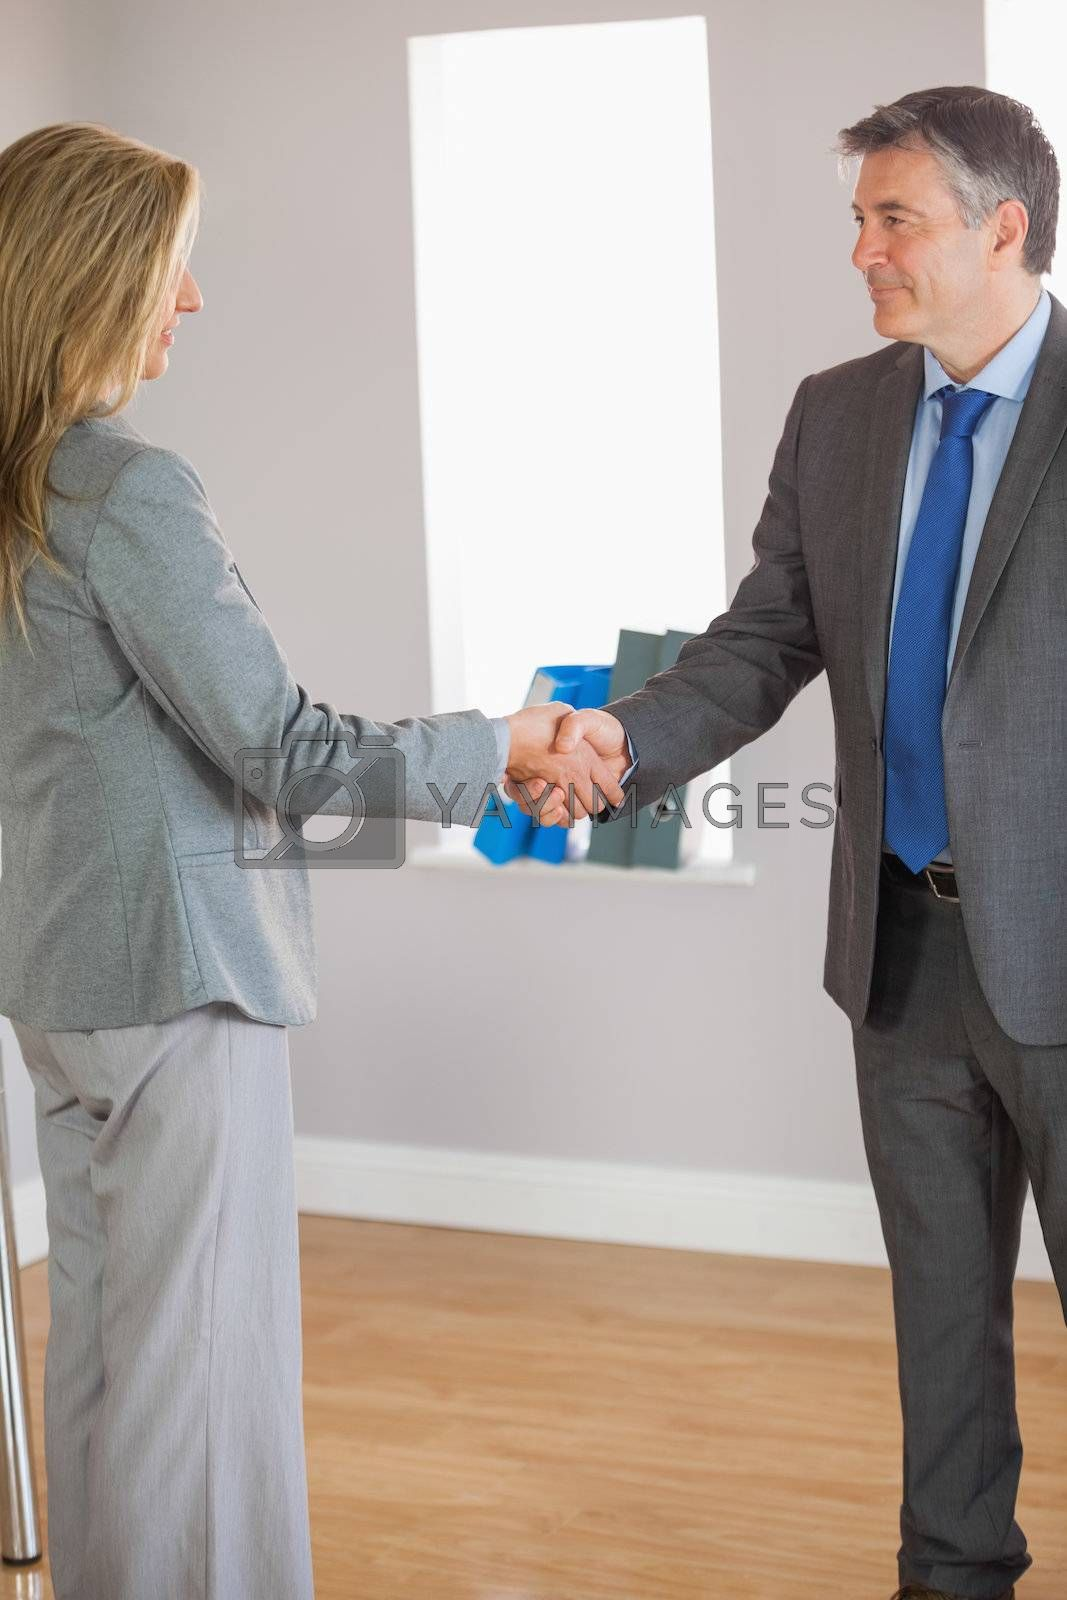 Business team shaking hands and smiling by Wavebreakmedia